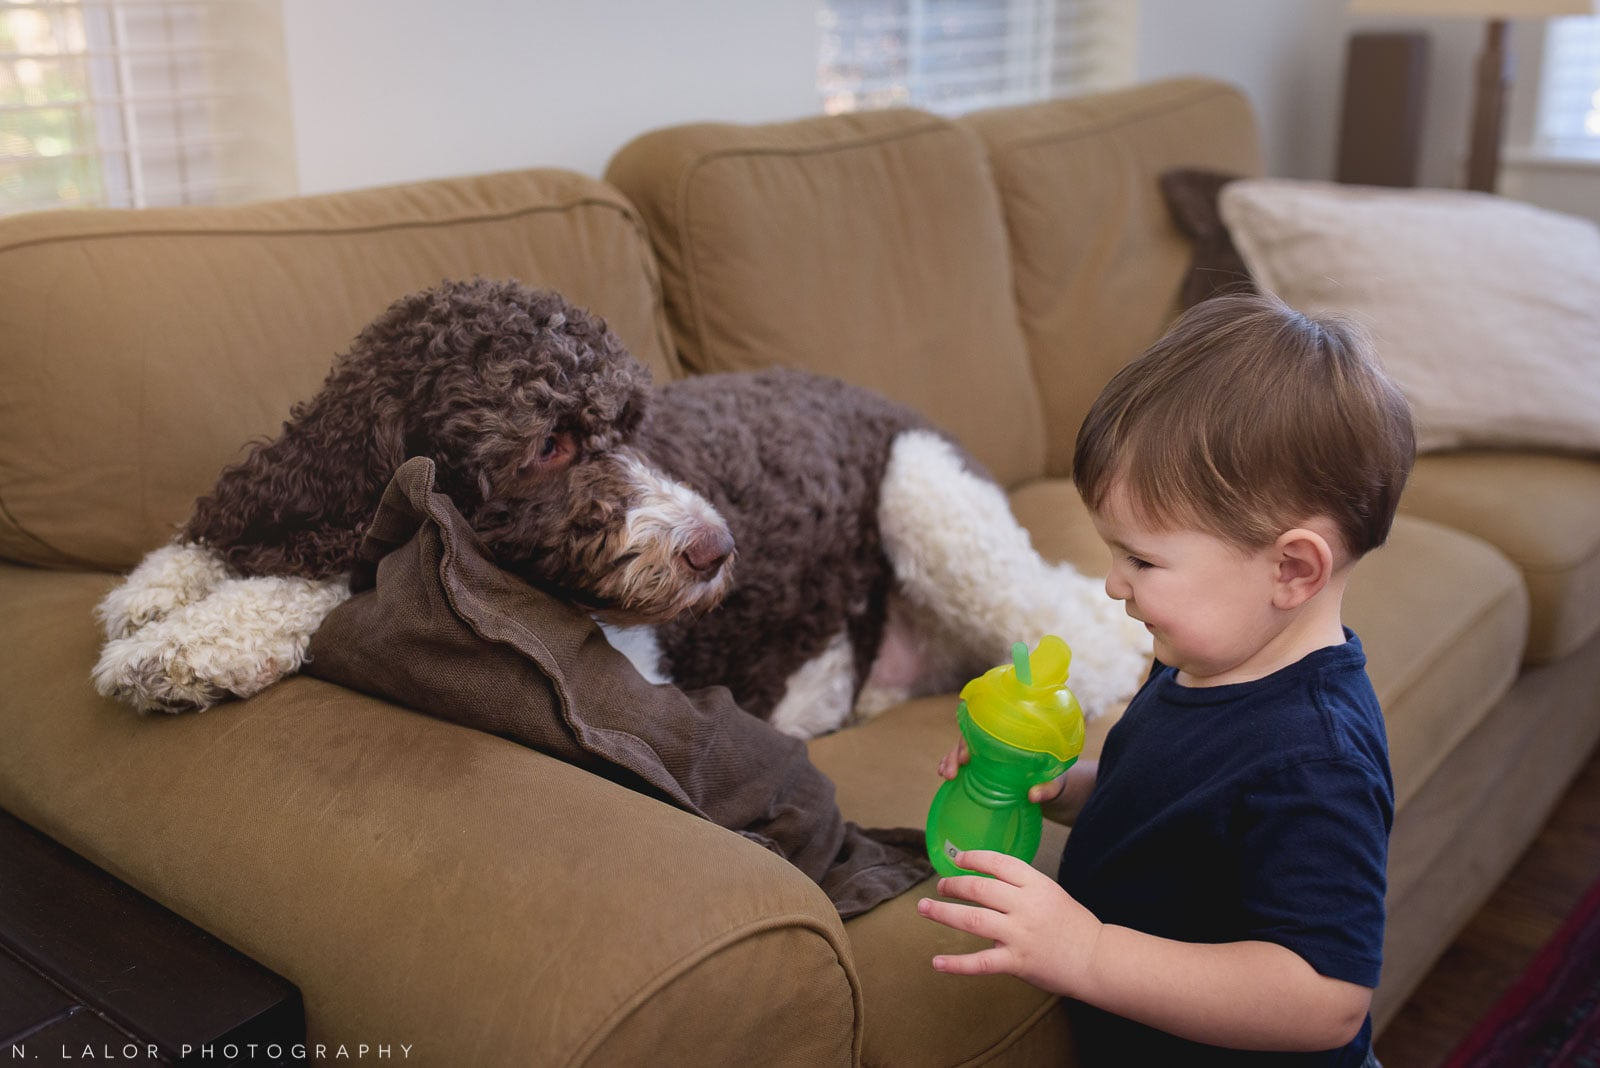 In-home lifestyle portrait of toddler and his family dog. Photo by N. Lalor Photography. Connecticut.